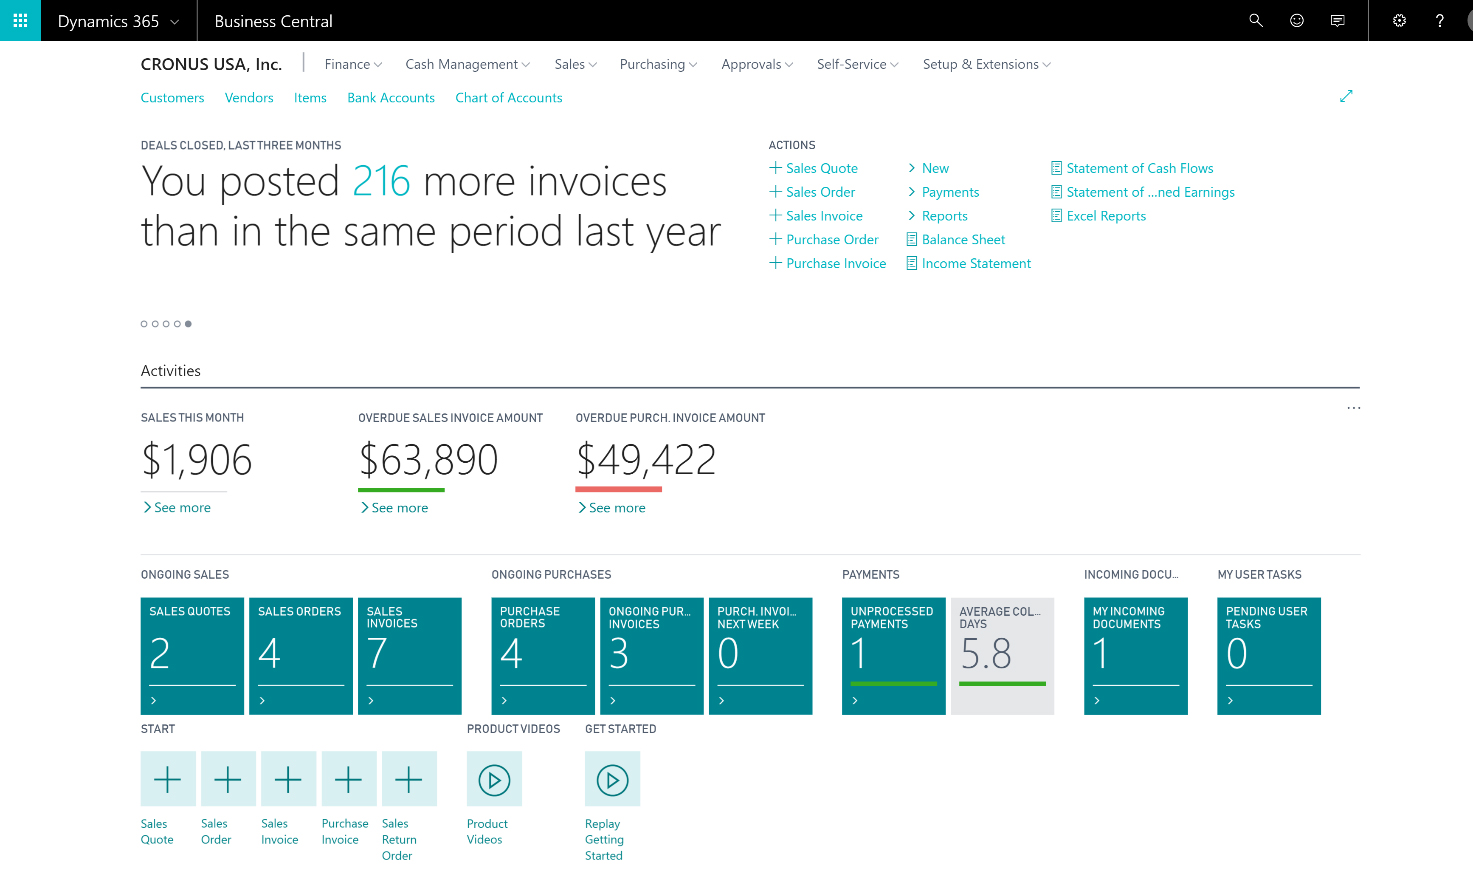 Microsoft Dynamics Business Central - Invoice 365